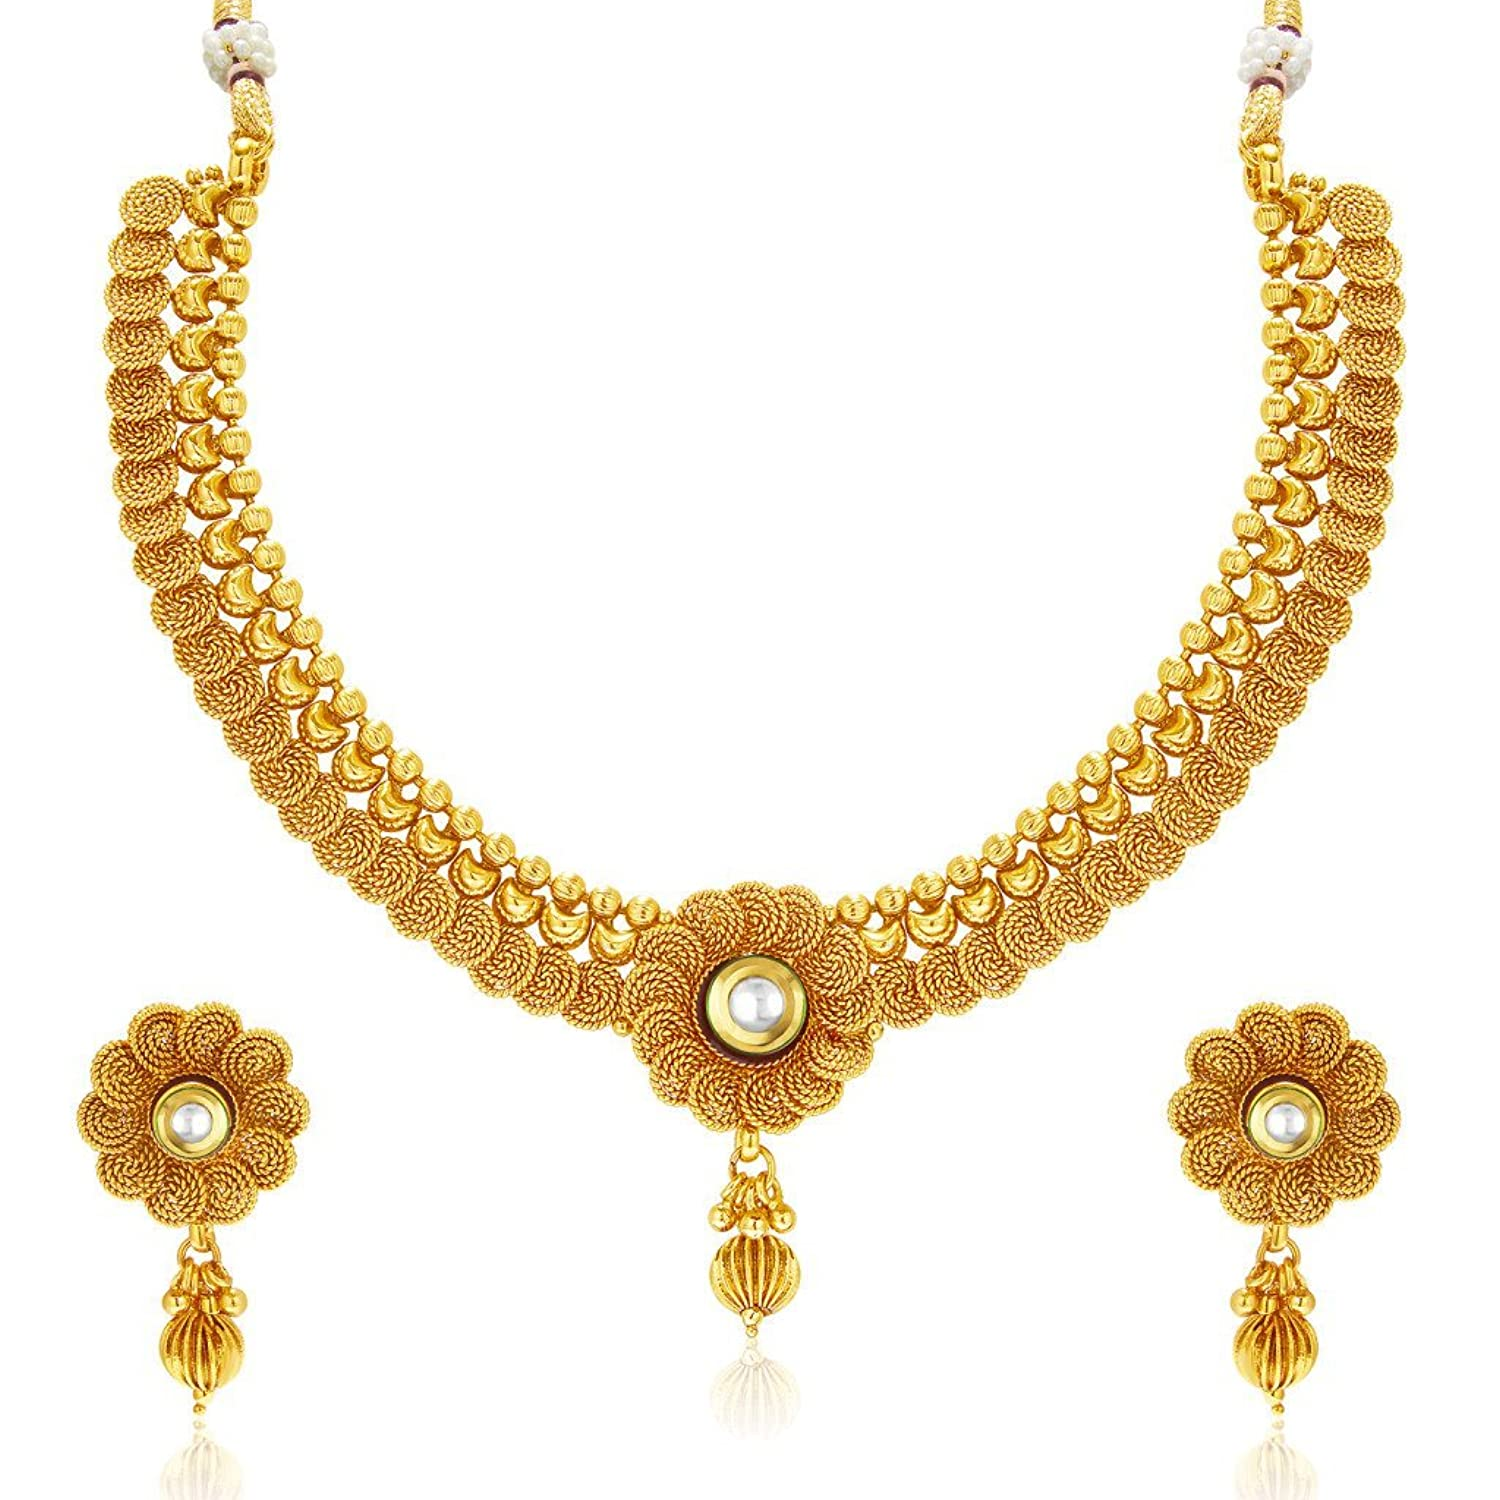 golden product amaya layered jeminee necklace jewellery london